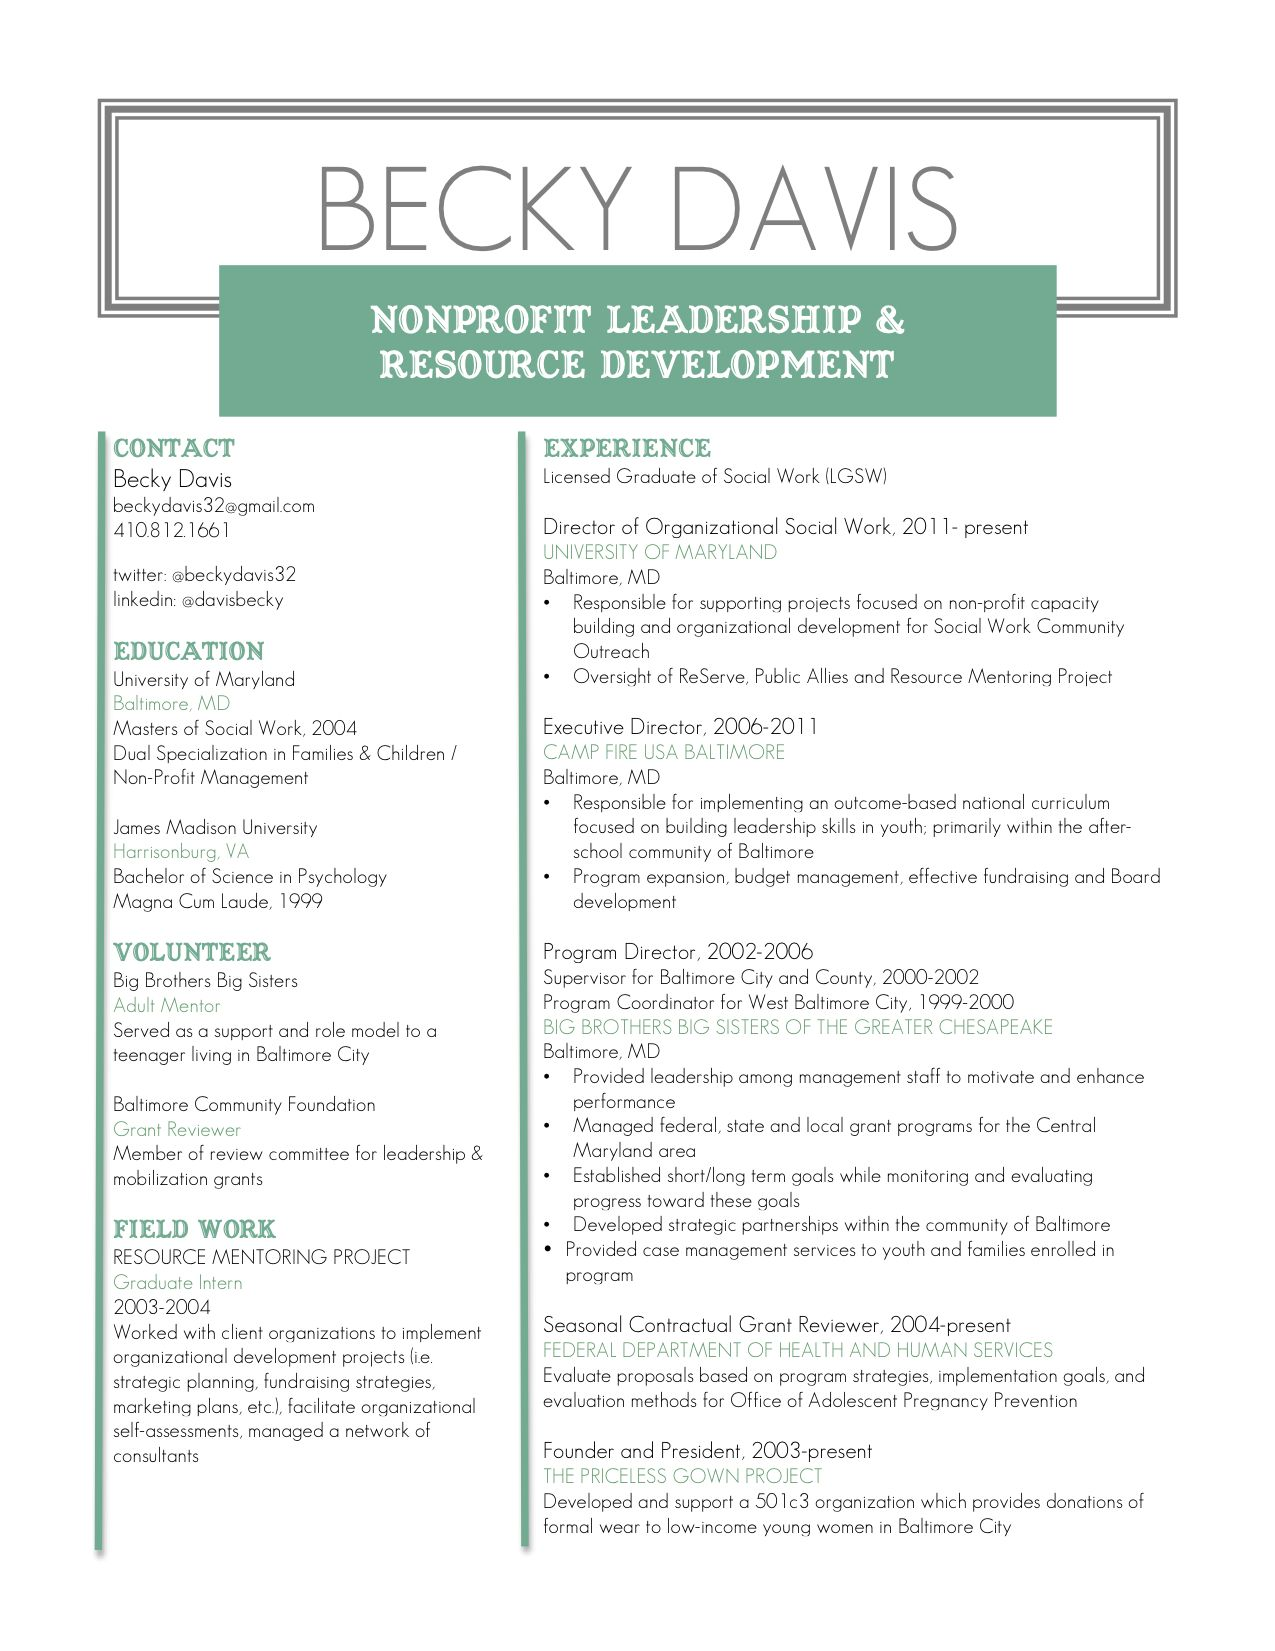 I like this resume design | Professional Development | Pinterest ...